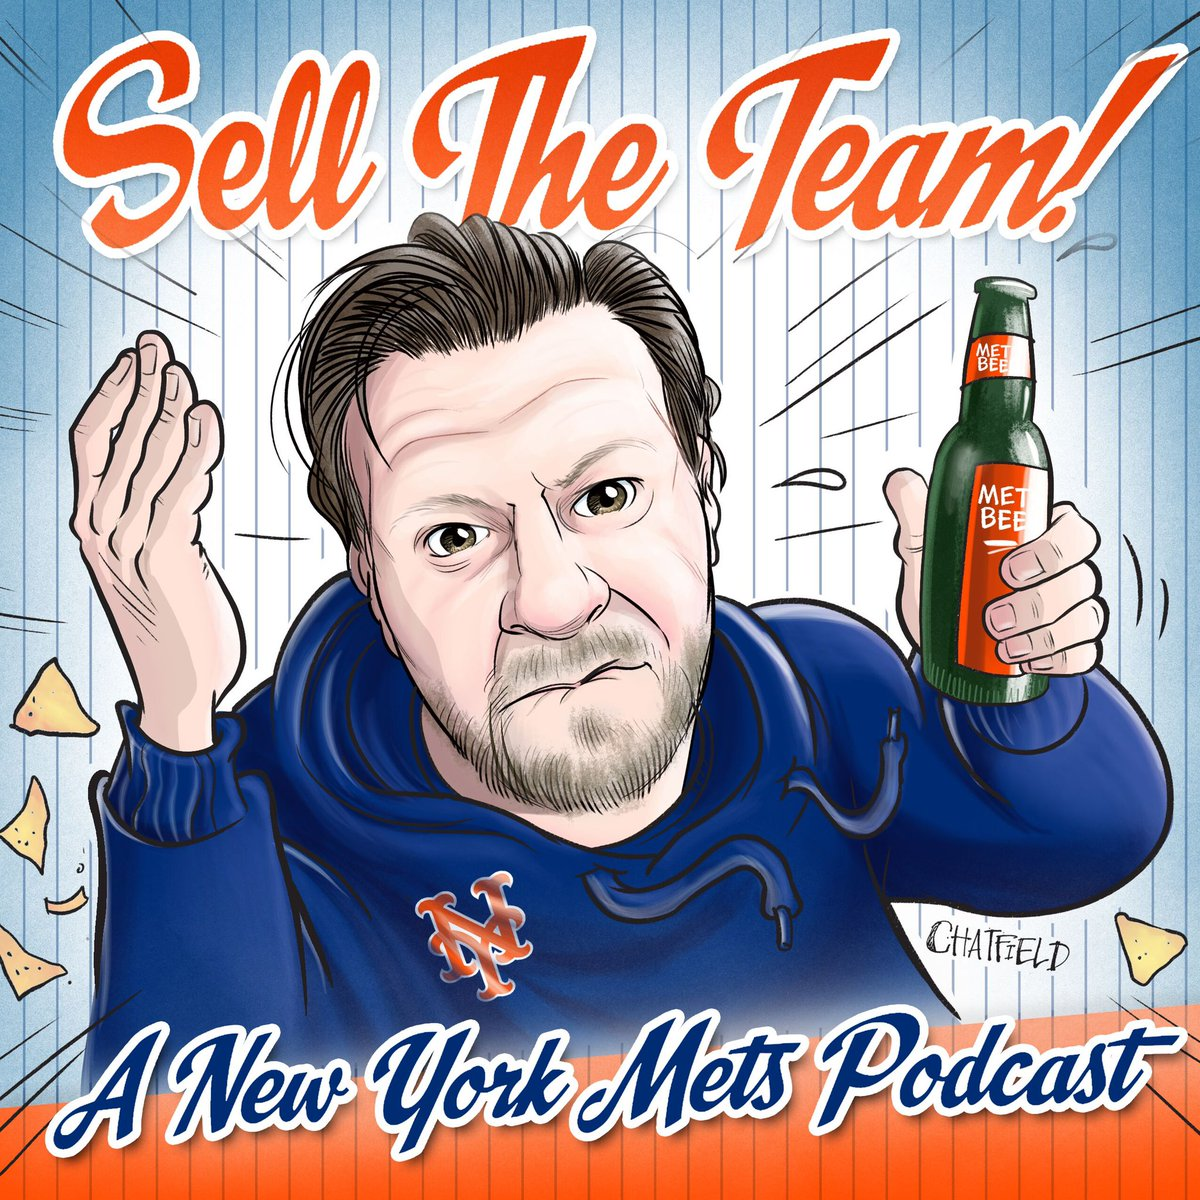 If there is ever a baseball season I'm starting a new podcast where I bash the @Mets ownership bc they are horrible humans.  Whenever there is a season please listen and help me get this team new owners. #mets #metstwitter #newyorkmets #baseball #selltheteam #wilponssuckpic.twitter.com/TCsJEp7JbY